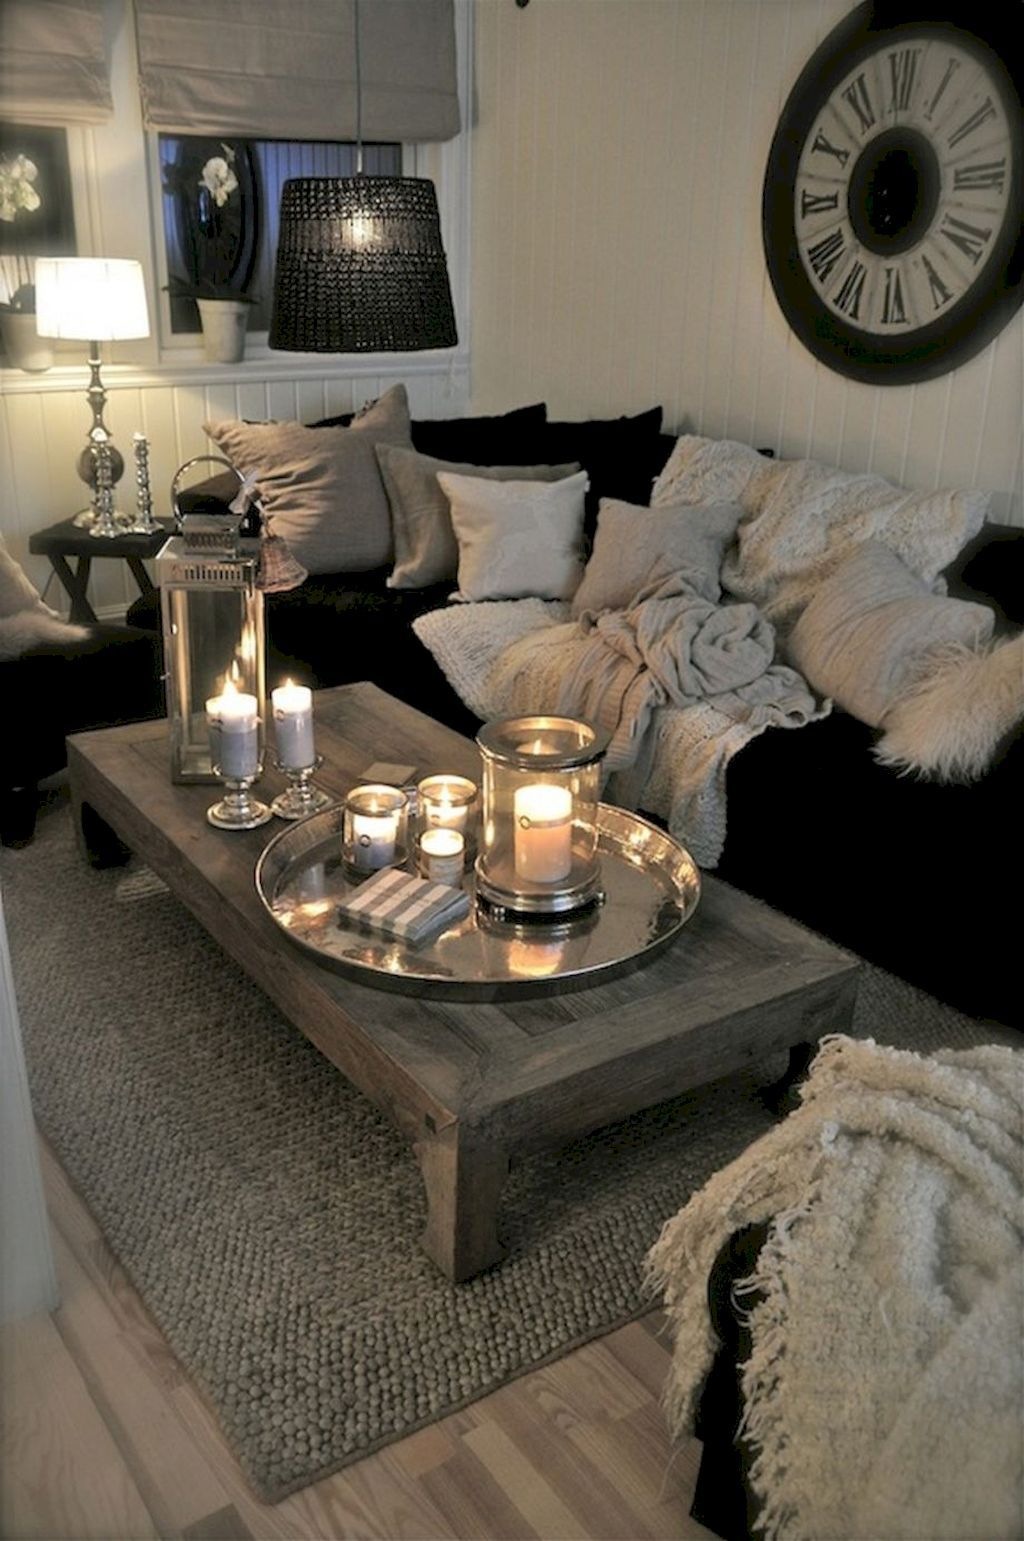 120 Couples First Apartment Decorating Ideas On A Budget Living